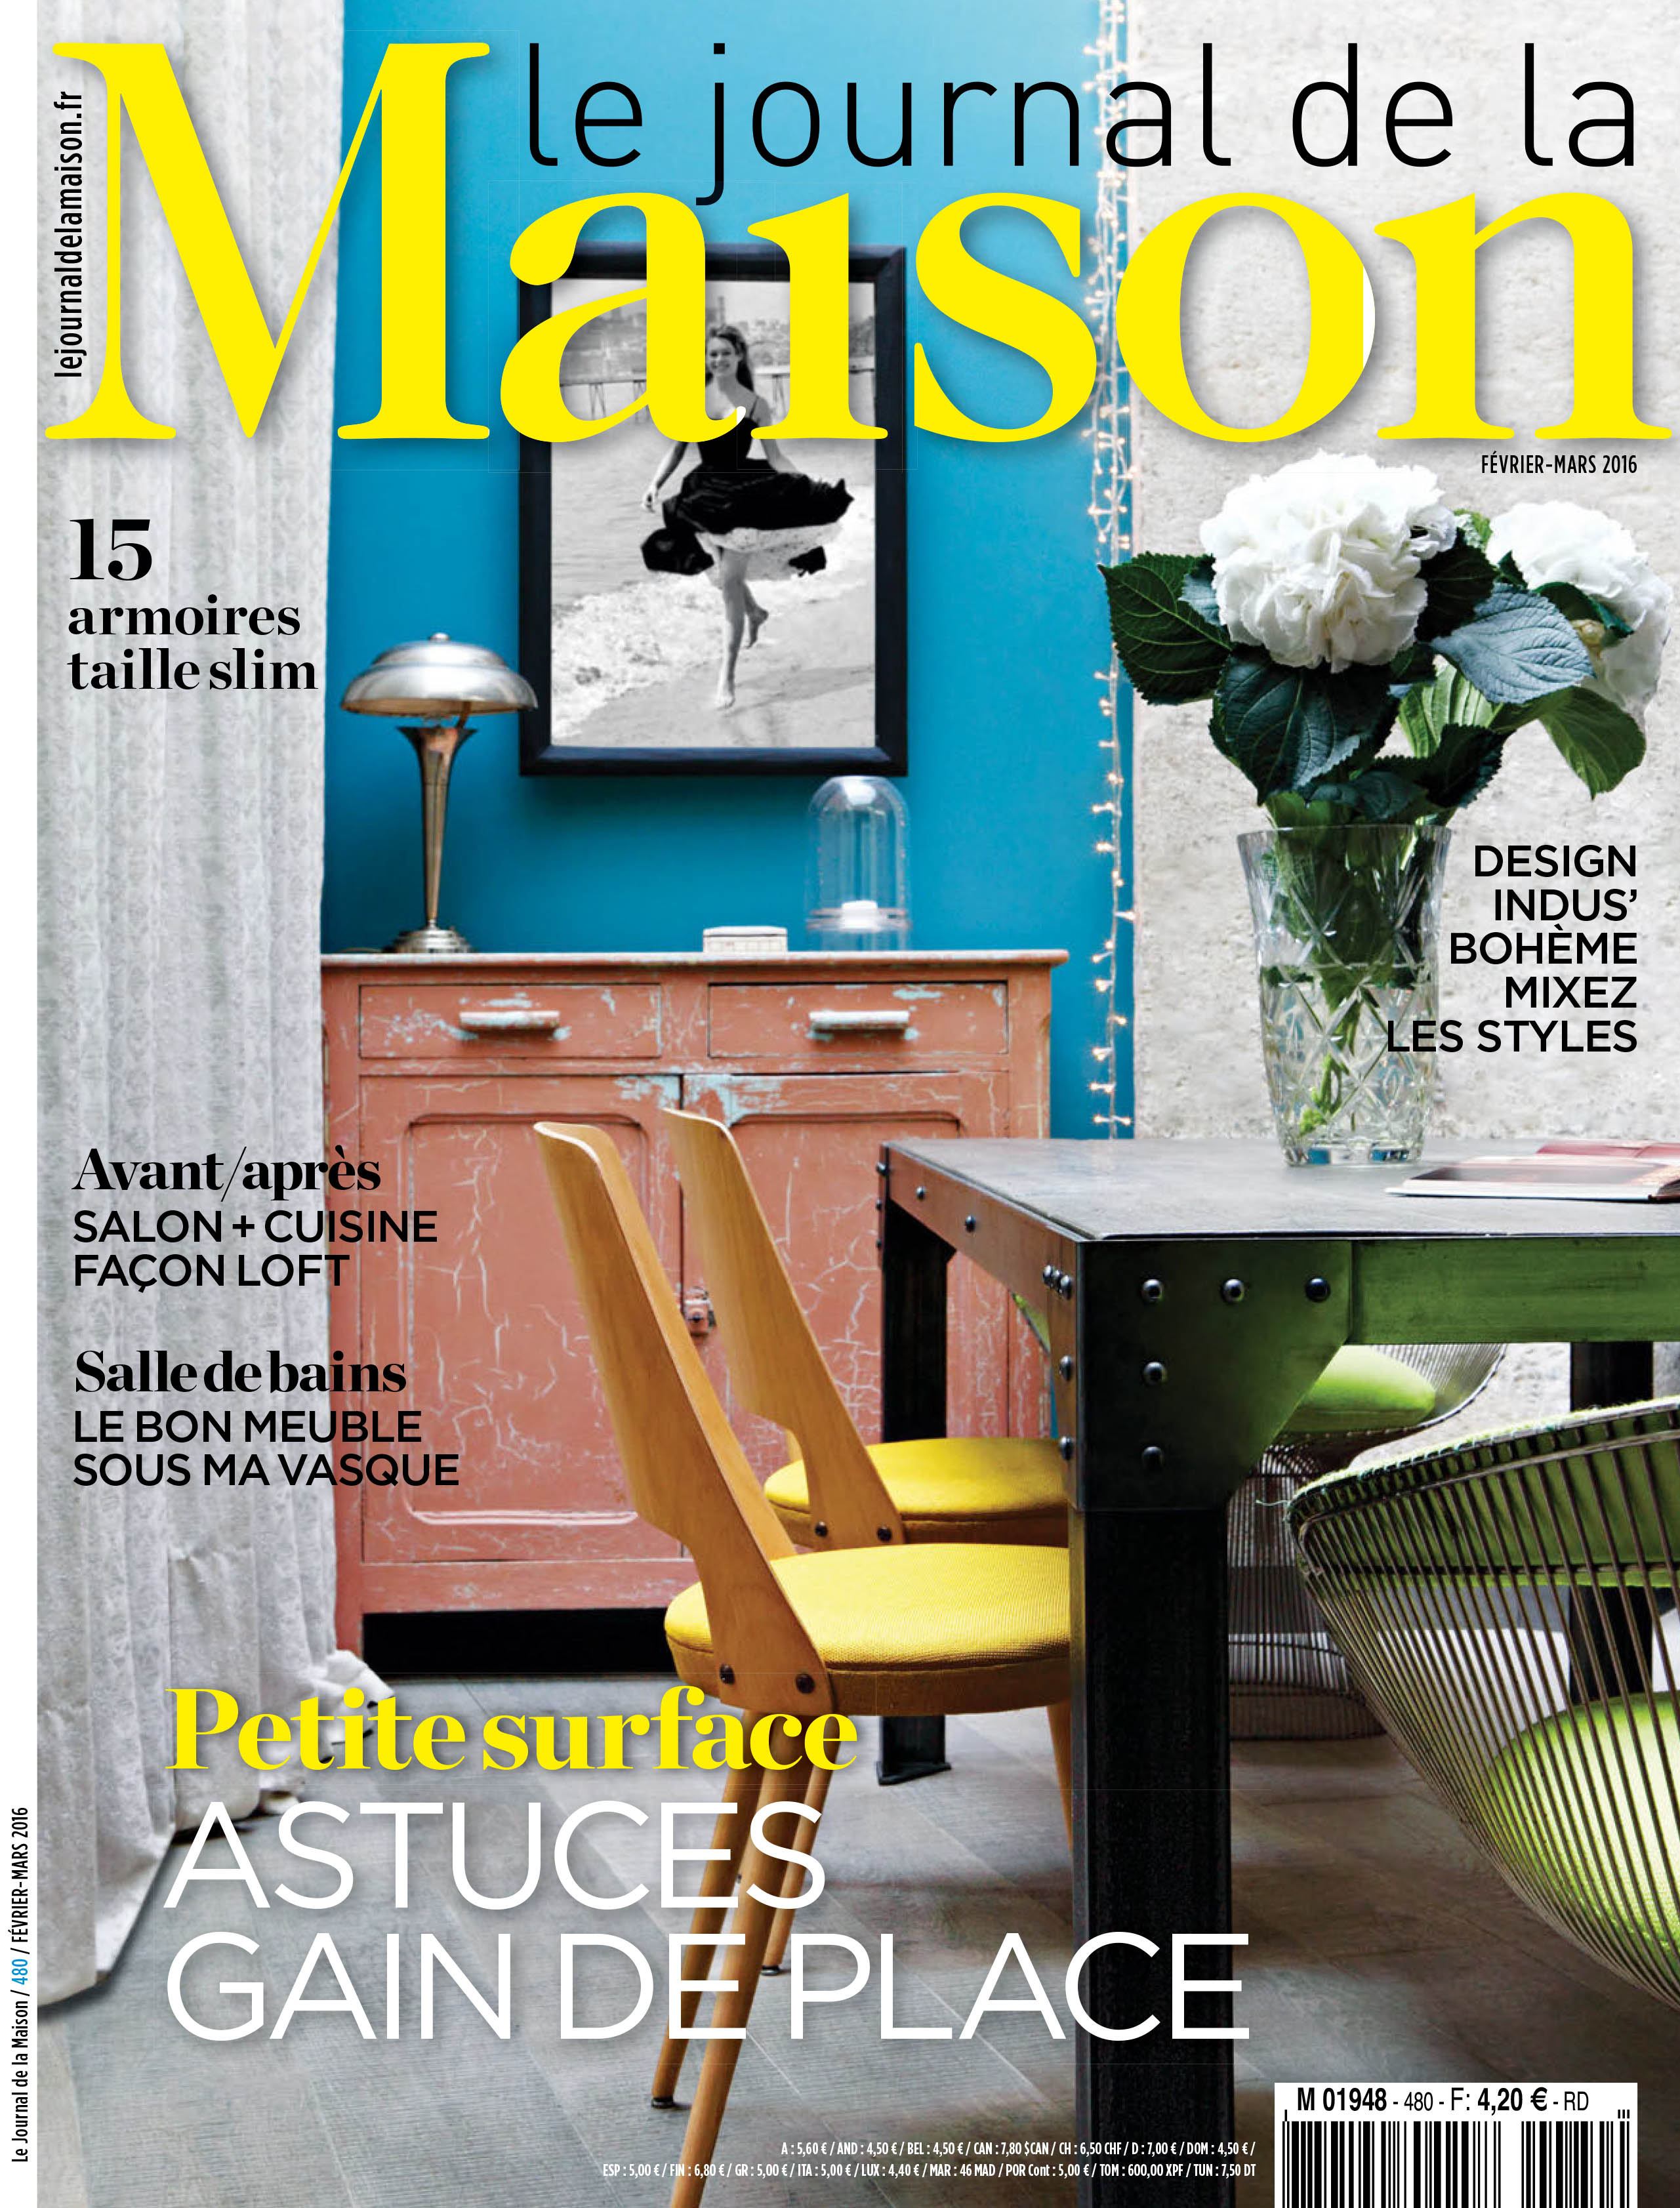 basset images le journal de la maison fev mars 2016. Black Bedroom Furniture Sets. Home Design Ideas